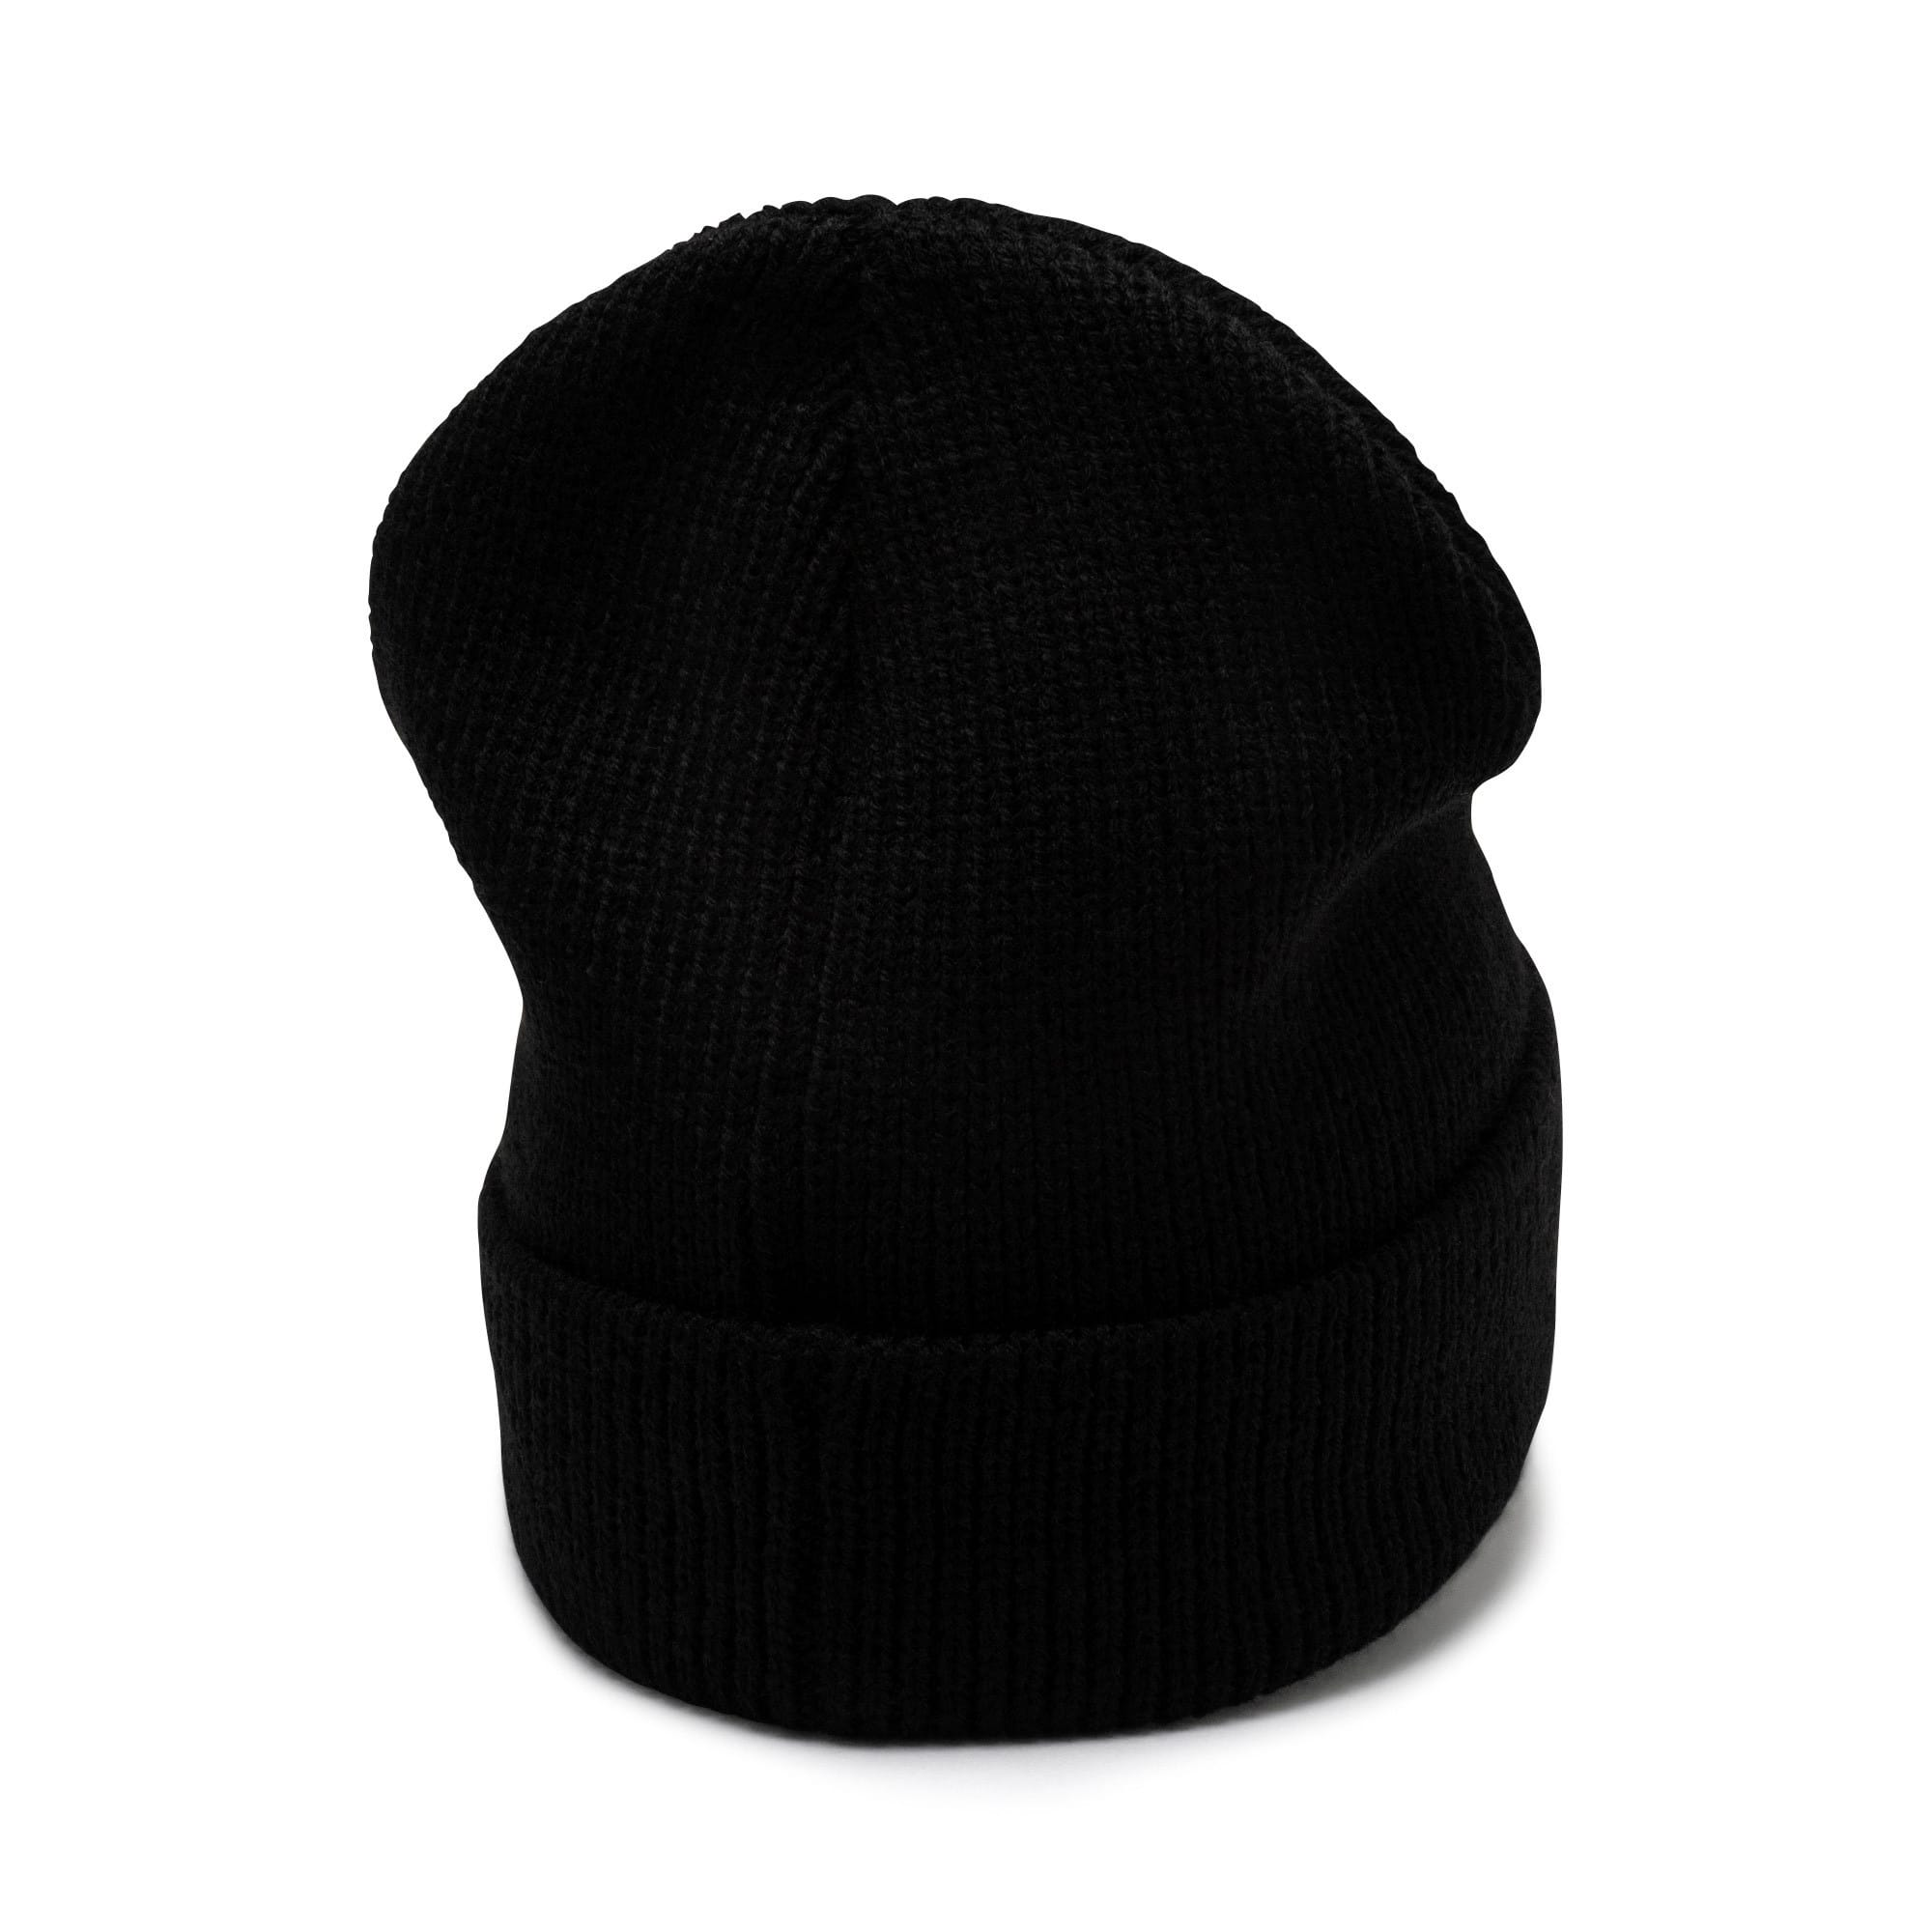 Thumbnail 2 of Classic Ribbed Beanie, Puma Black, medium